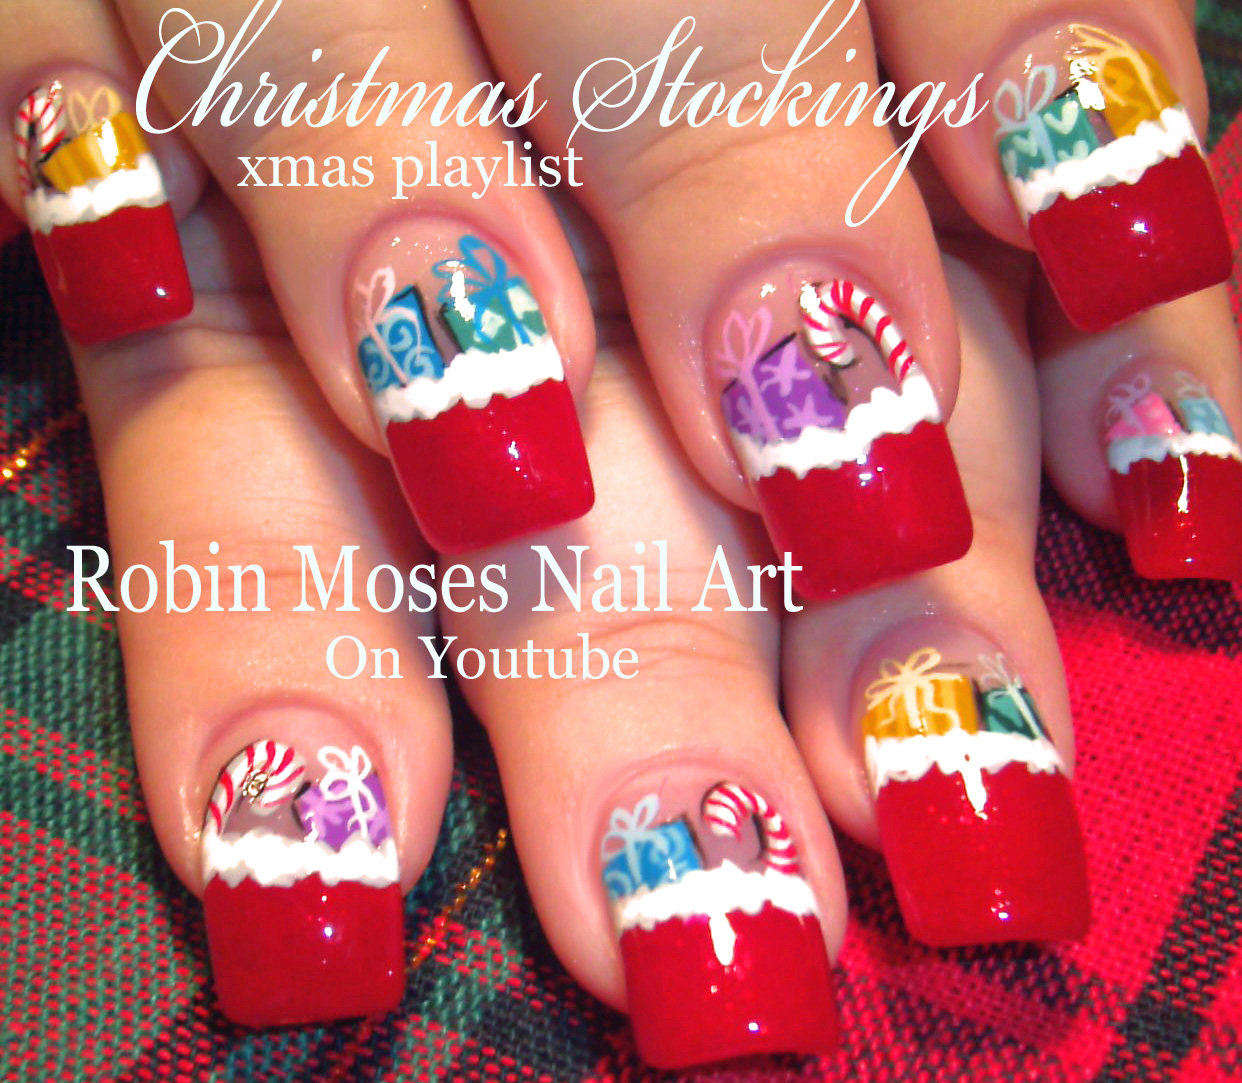 Robin Moses Nail Art Instagram My Own Email